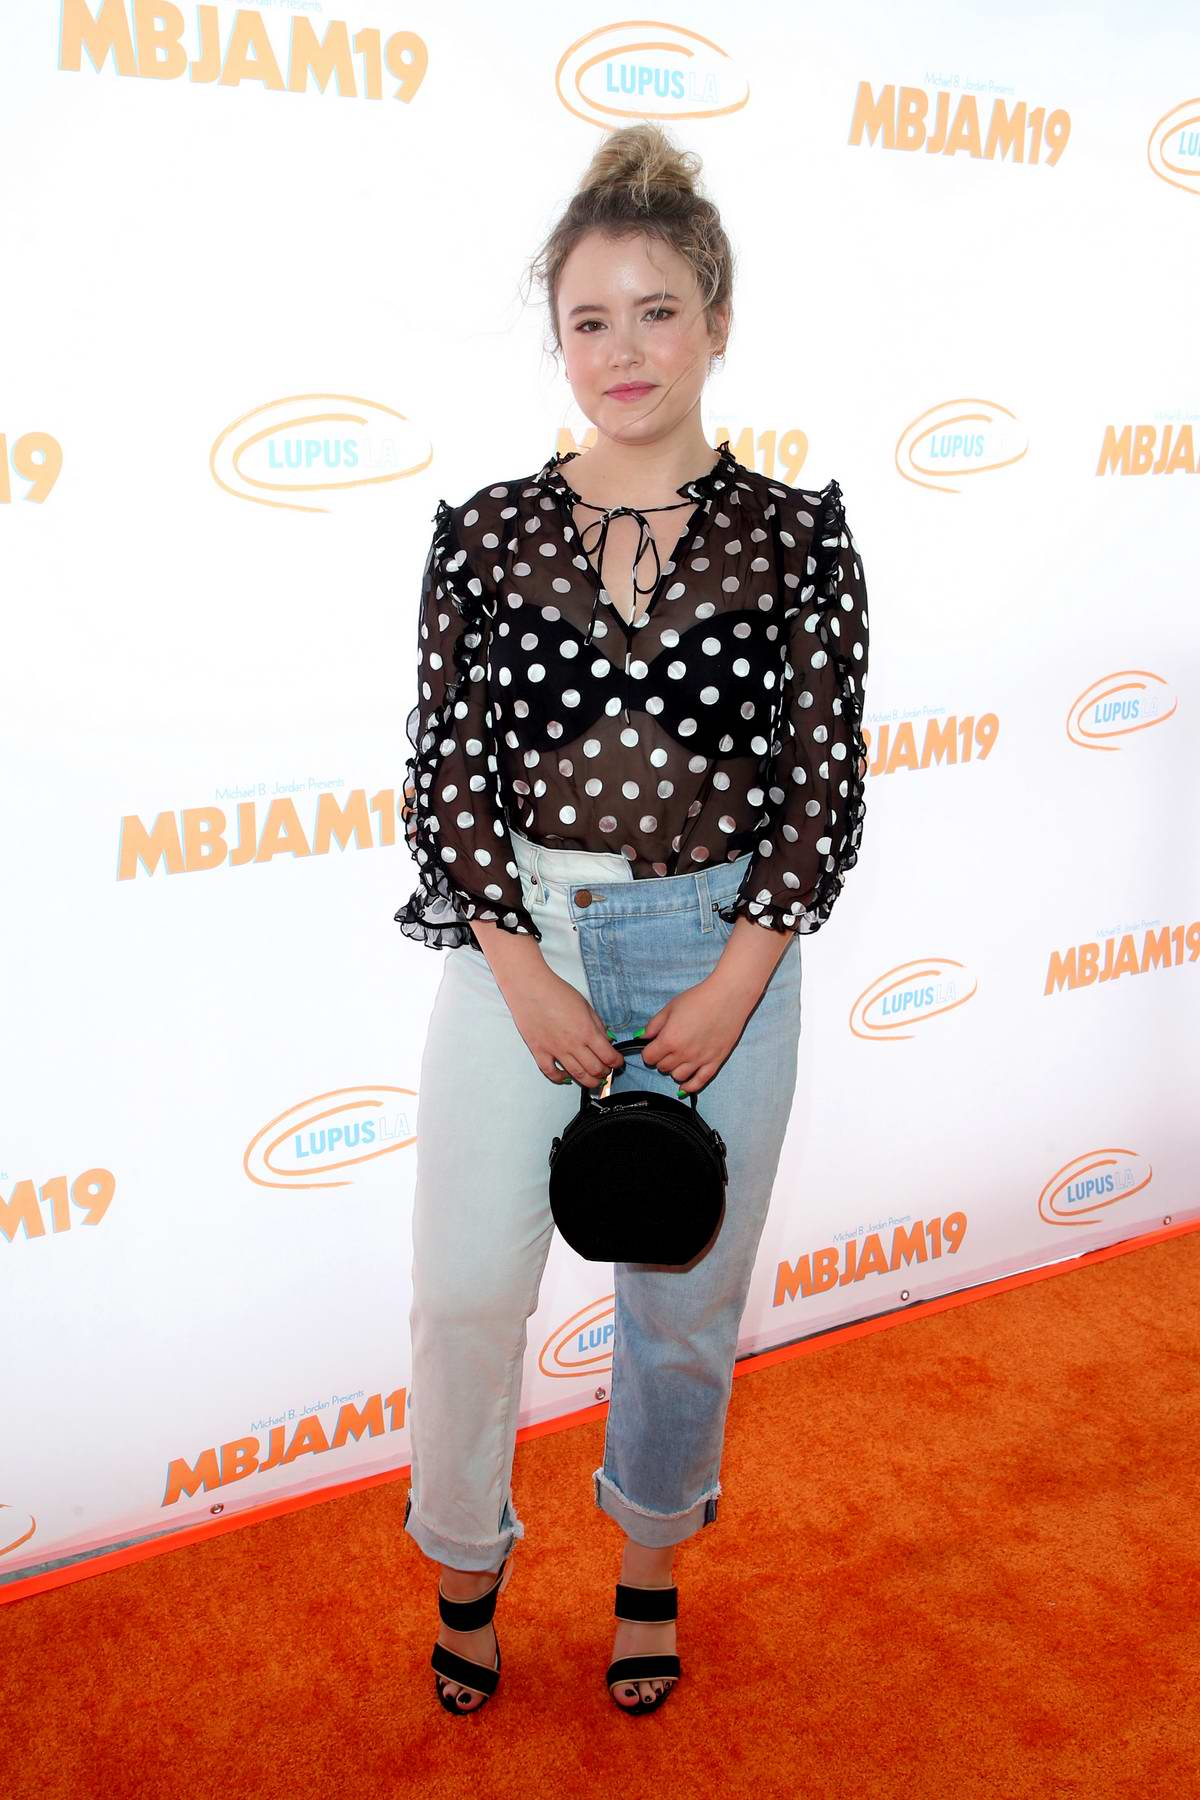 Taylor Spreitler attends the 3rd Annual MBJAM19 in Hollywood, California